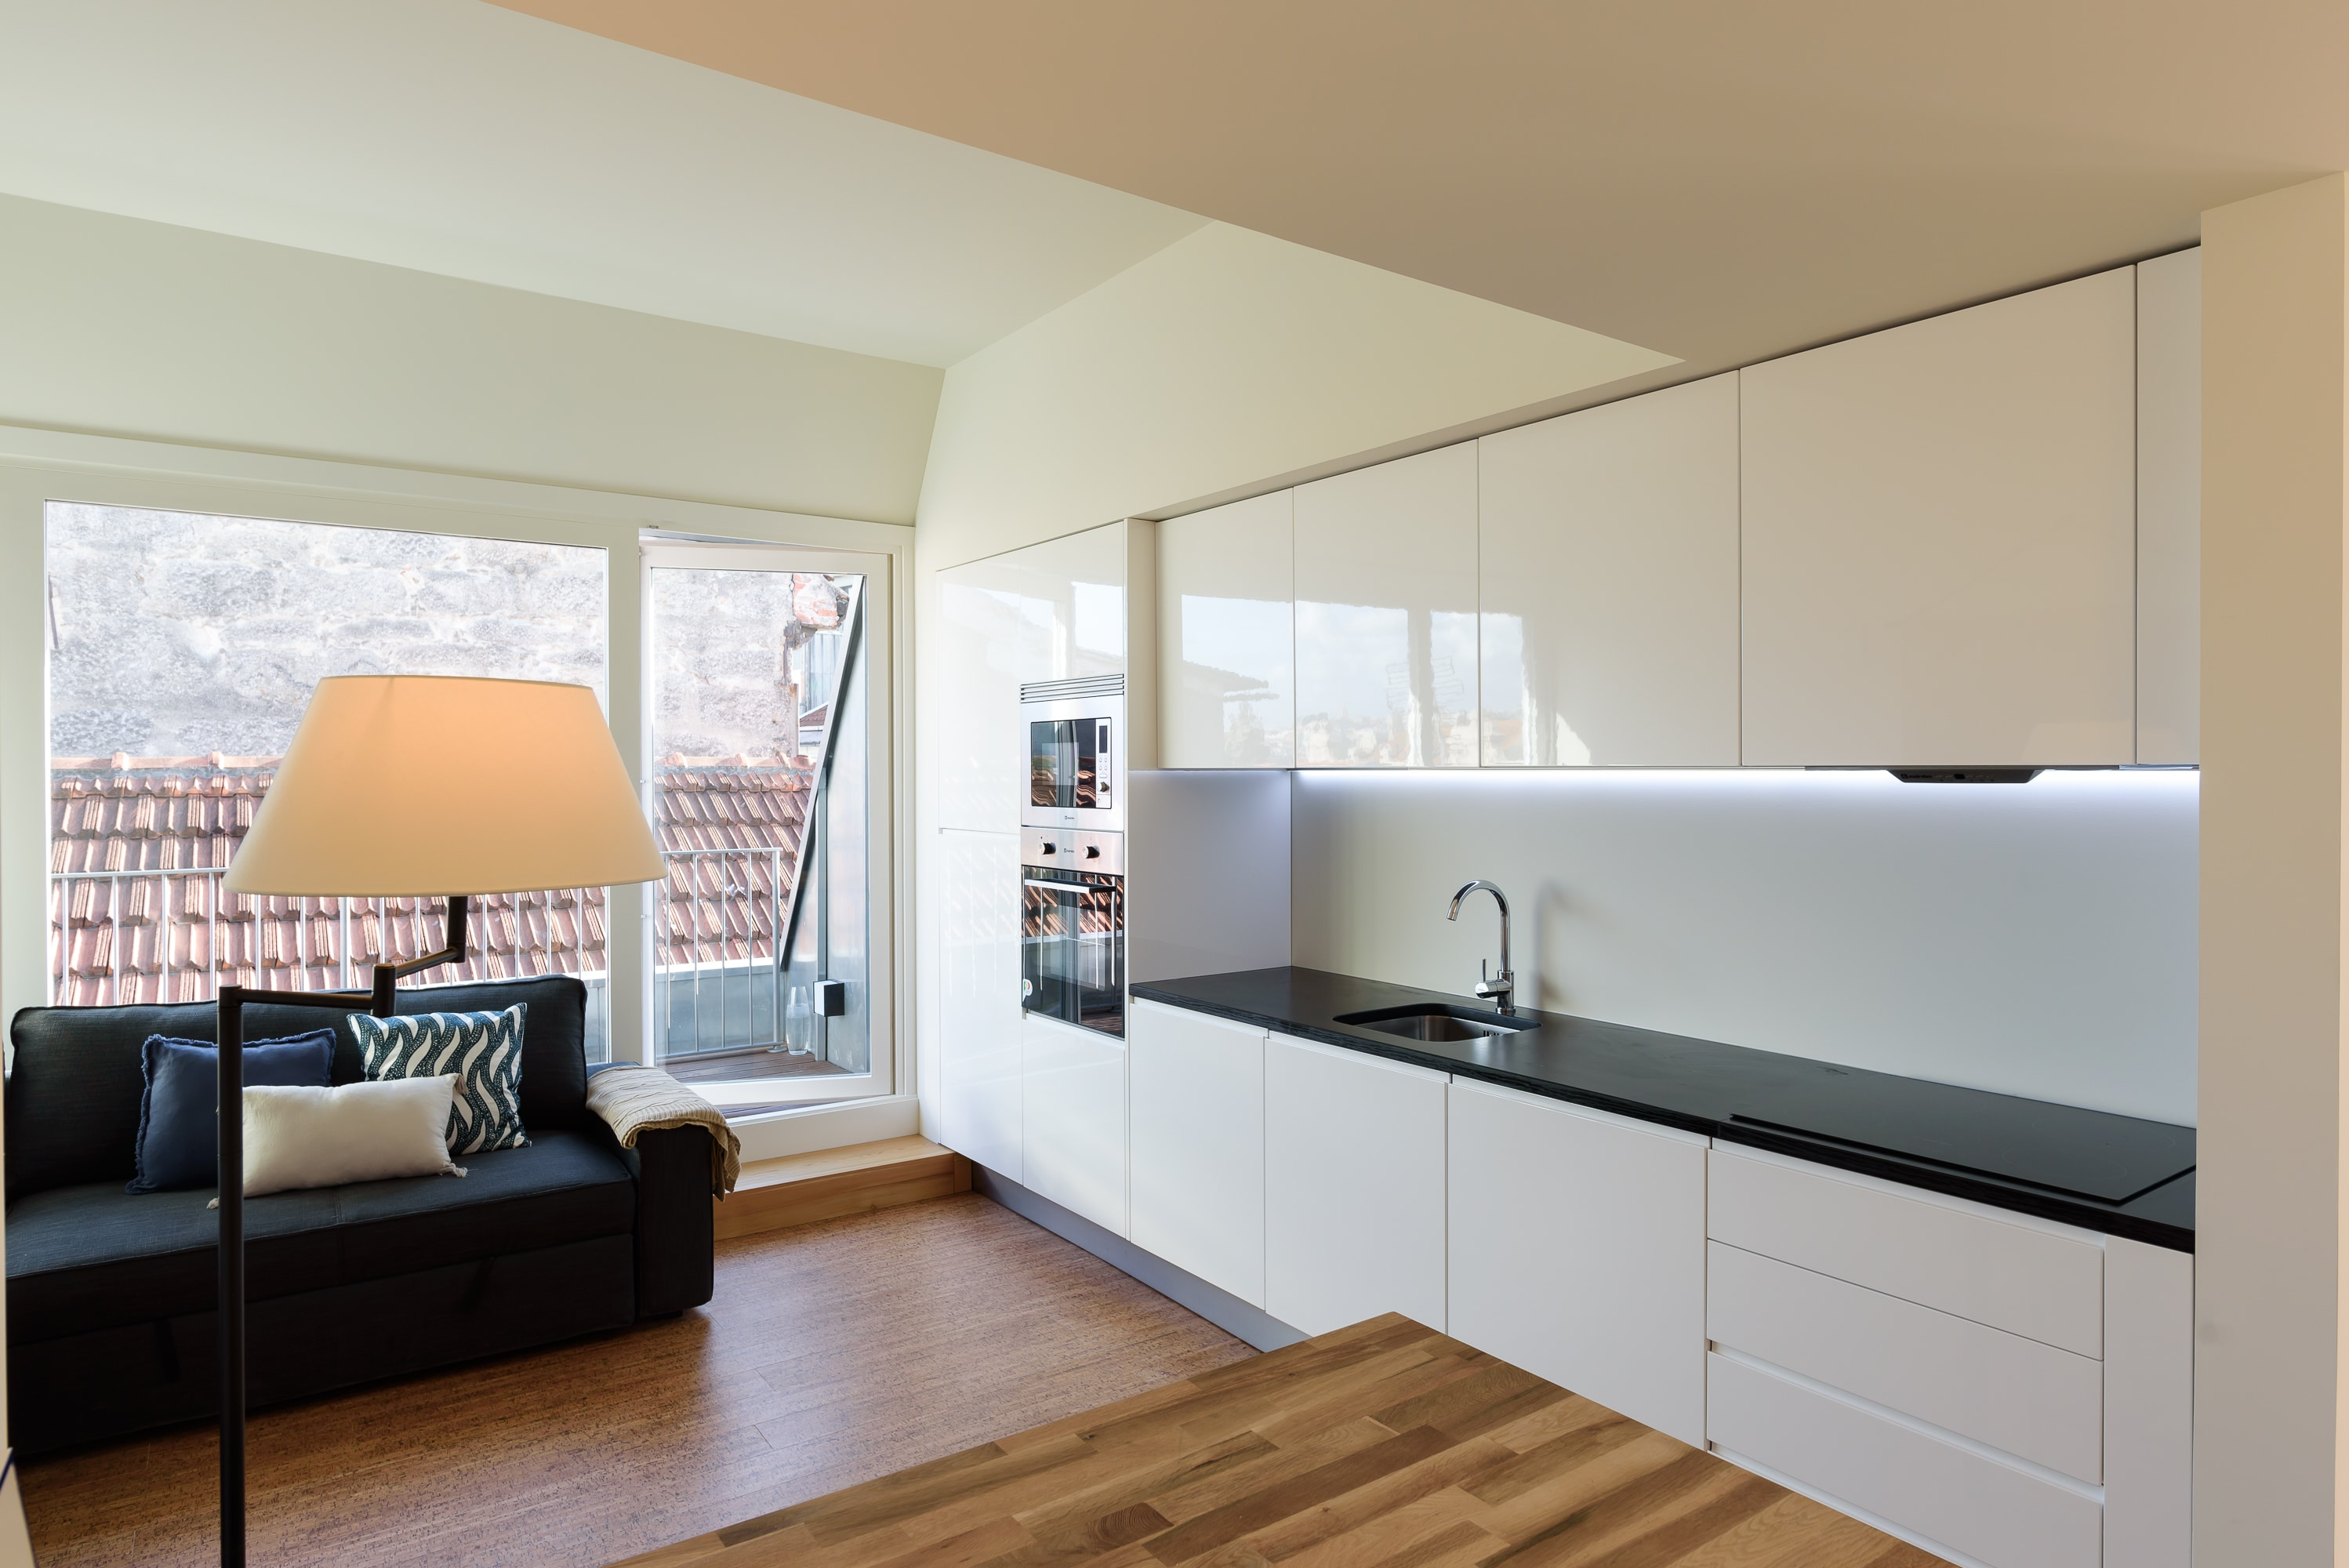 Property Image 1 - Exclusive City Apartment with Balcony